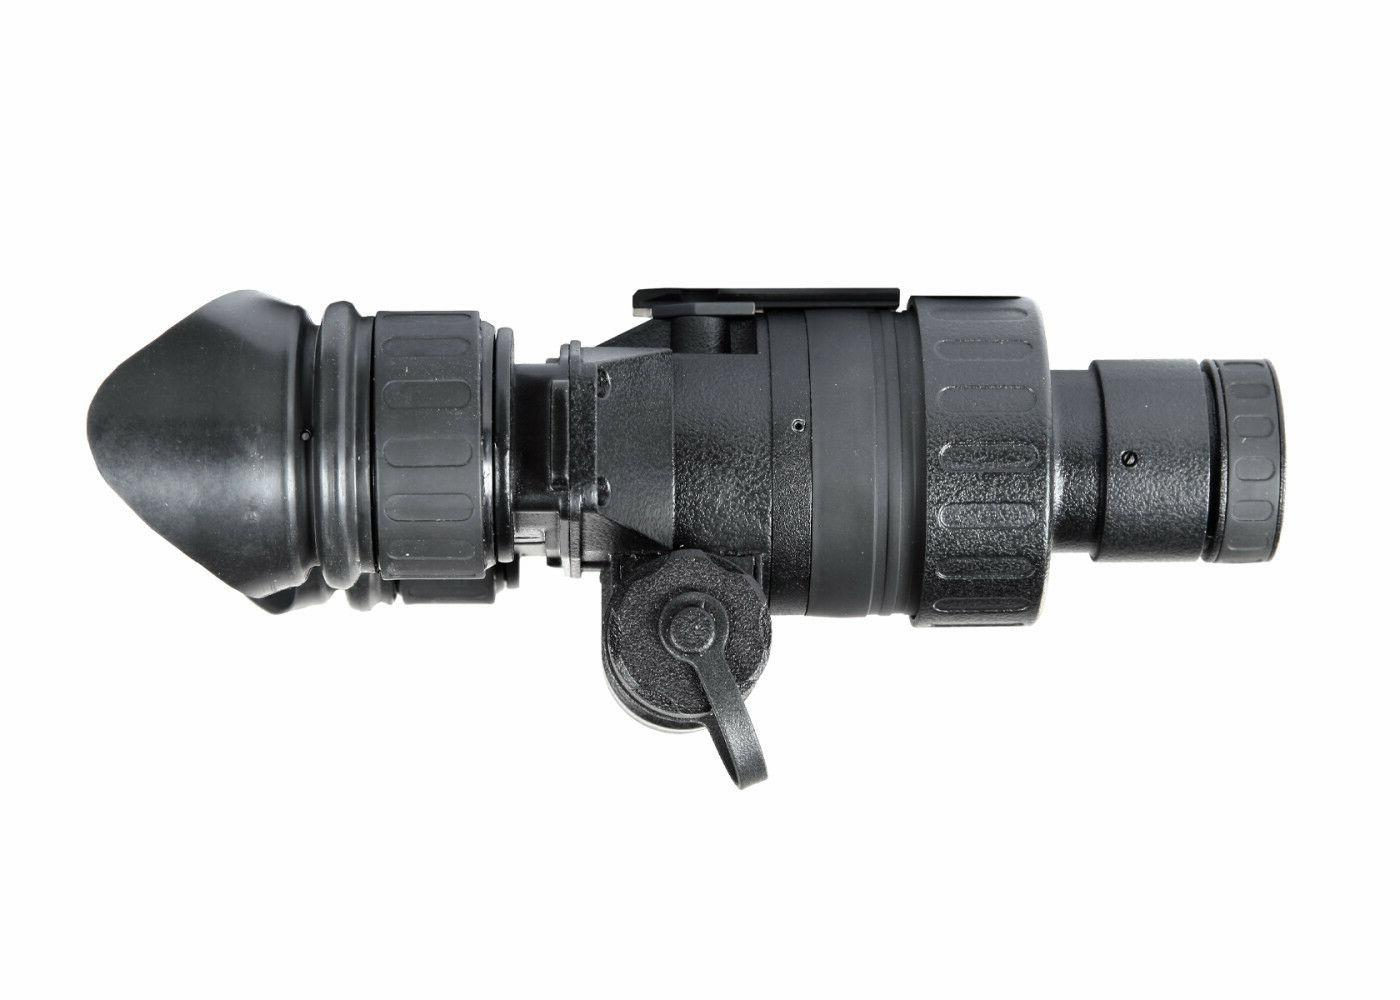 ARMASIGHT GEN SD Definition Night Vision PVS7